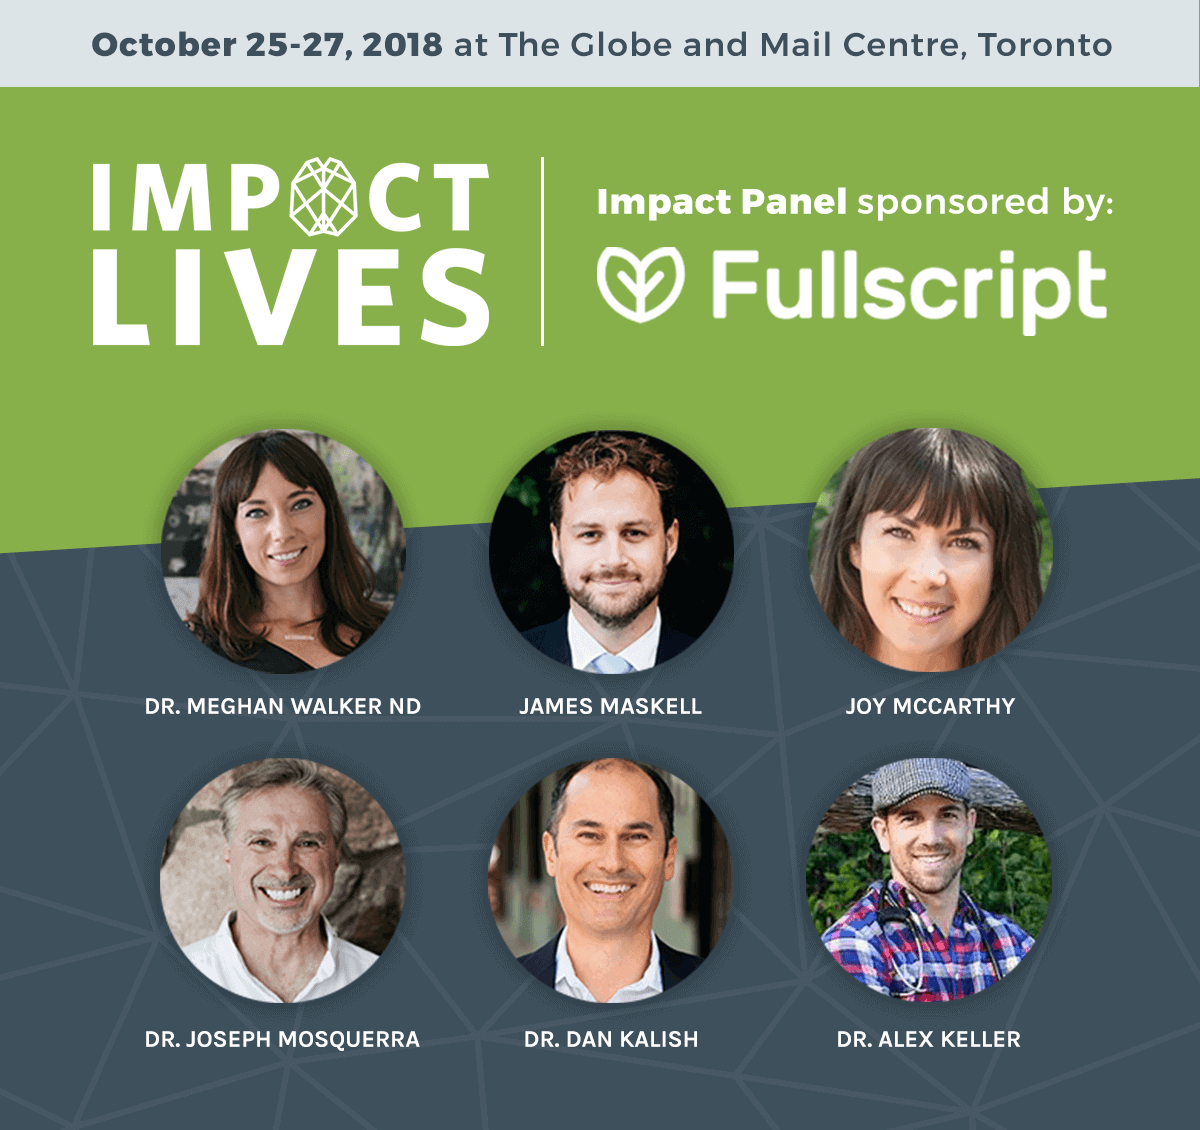 impact-panel-impact lives event toronto fullscript